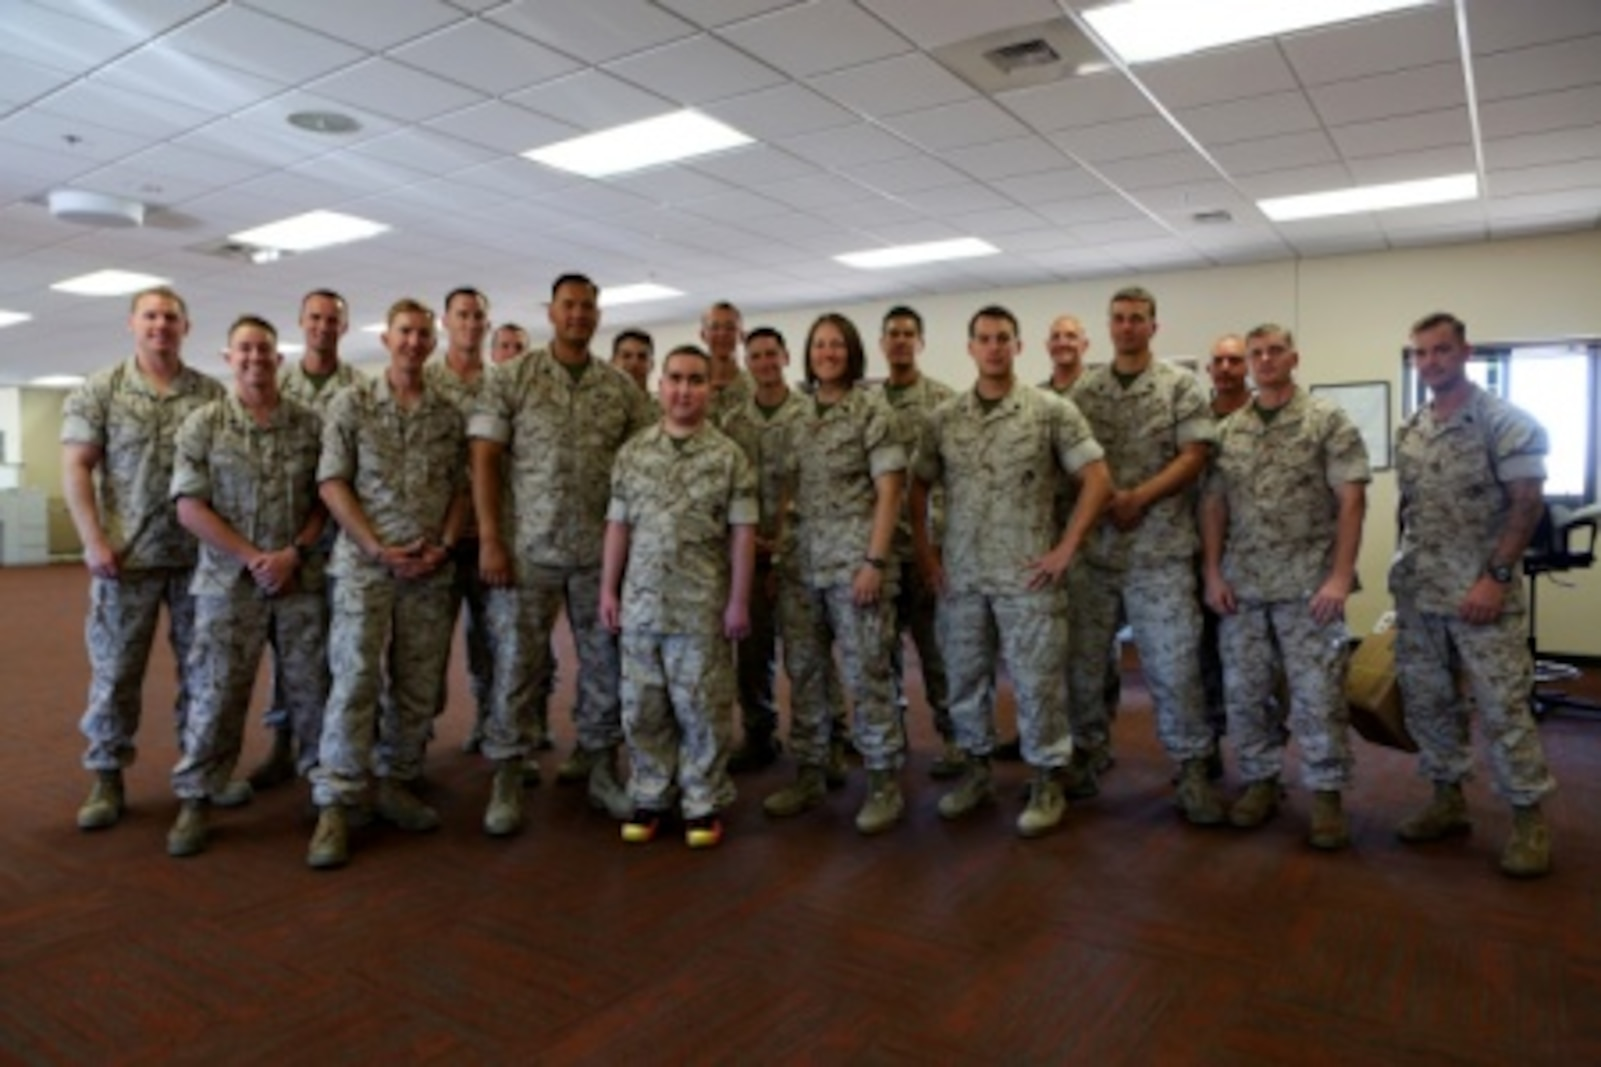 James Gallant, a young man diagnosed with brain cancer, poses for a photo with Marines of 1st Explosive Ordnance Disposal Company, 1st Marine Logistics Group, aboard Camp Pendleton, Calif., July 25, 2015. Collaborating with the Make-A-Wish Foundation, 1st EOD helped James experience what being an EOD technician is like by giving him a tour through their library of ordnance and EOD tools, teaching him to operate the TALON bomb disposing robot and presenting him with his own desert utilities and EOD badge.